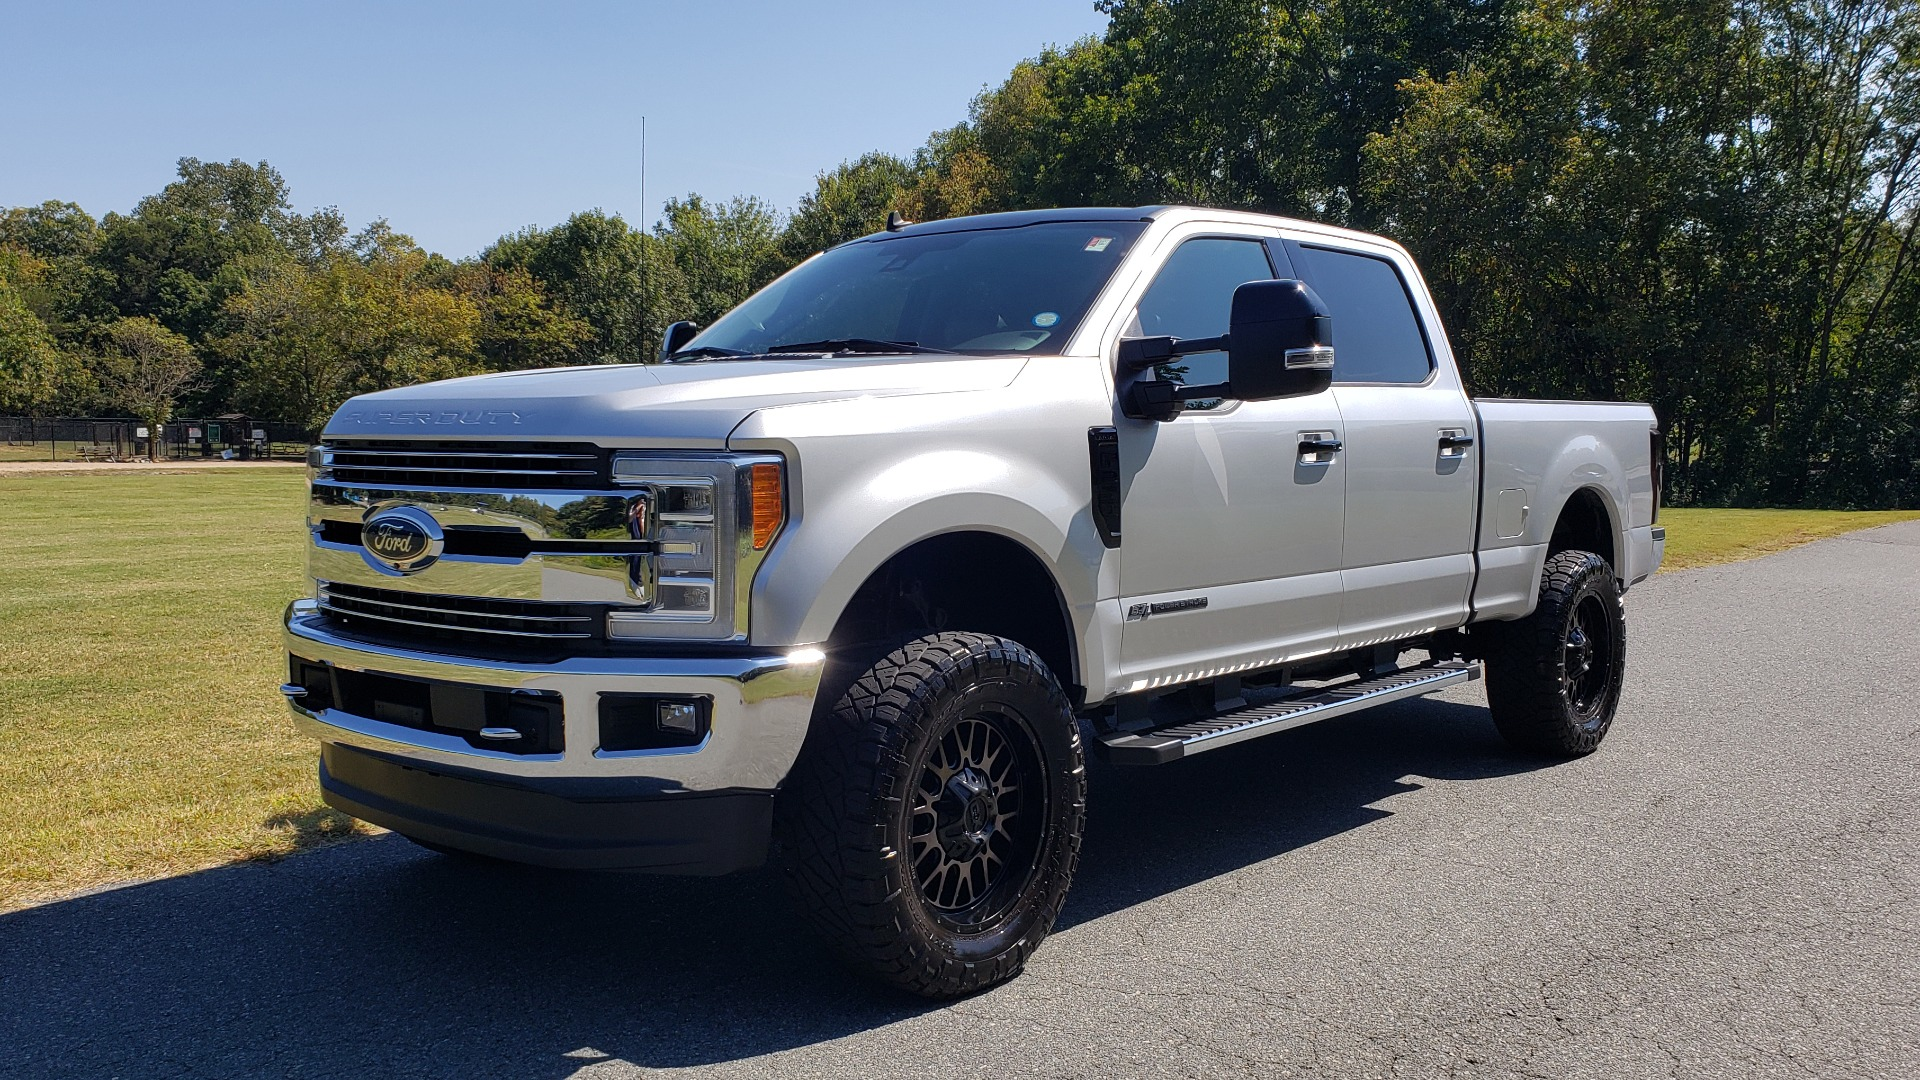 Used 2019 Ford SUPER DUTY F-250 SRW LARIAT 4WD / NAV / PANO-ROOF / B&O SND / REARVIEW / TAILGATE STEP for sale Sold at Formula Imports in Charlotte NC 28227 1